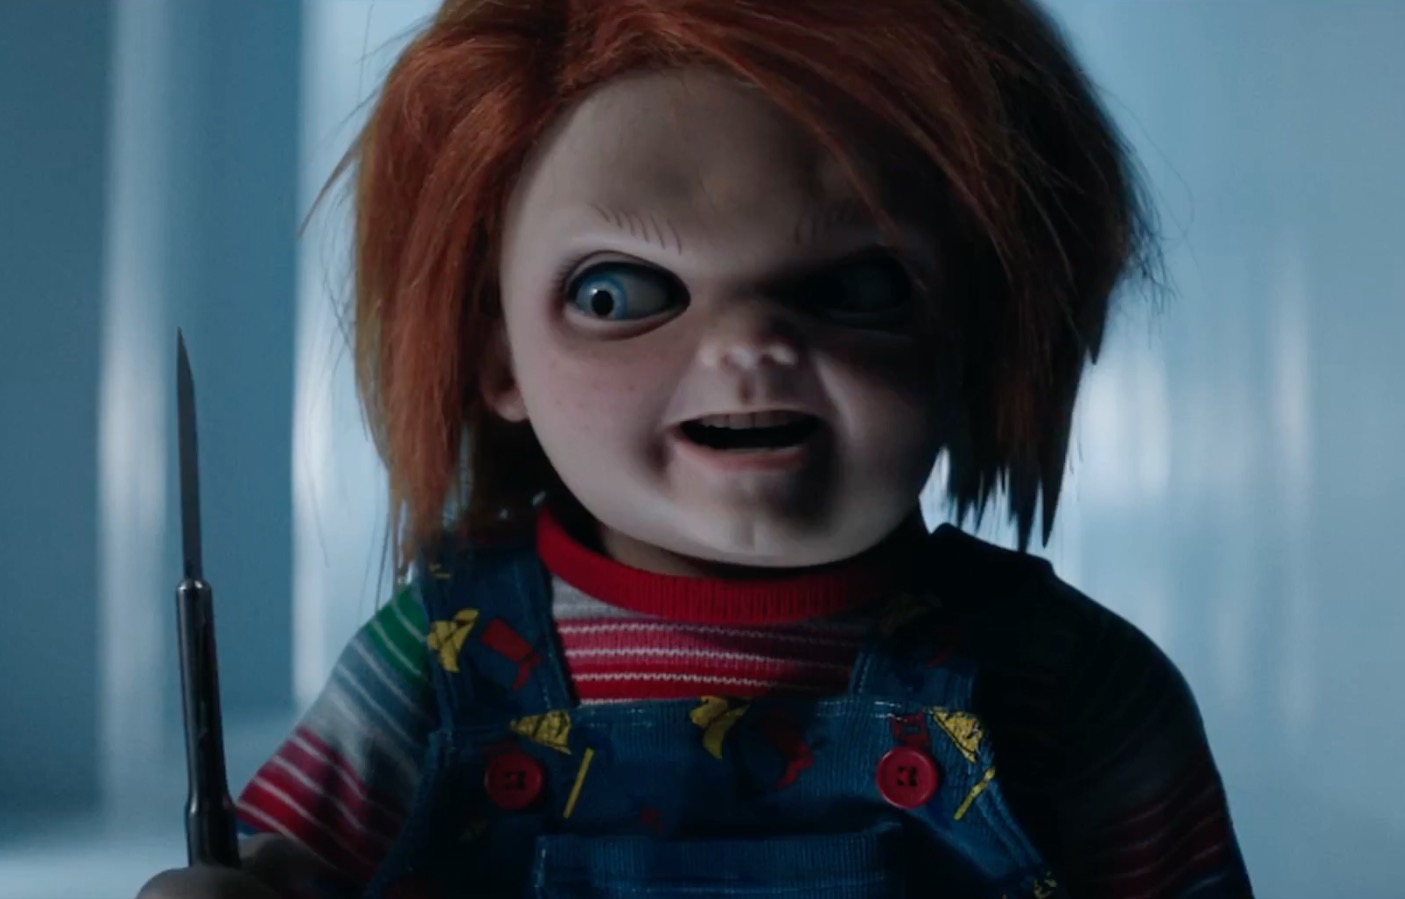 The 'Cult Of Chucky' Trailer In Over 40 Images!